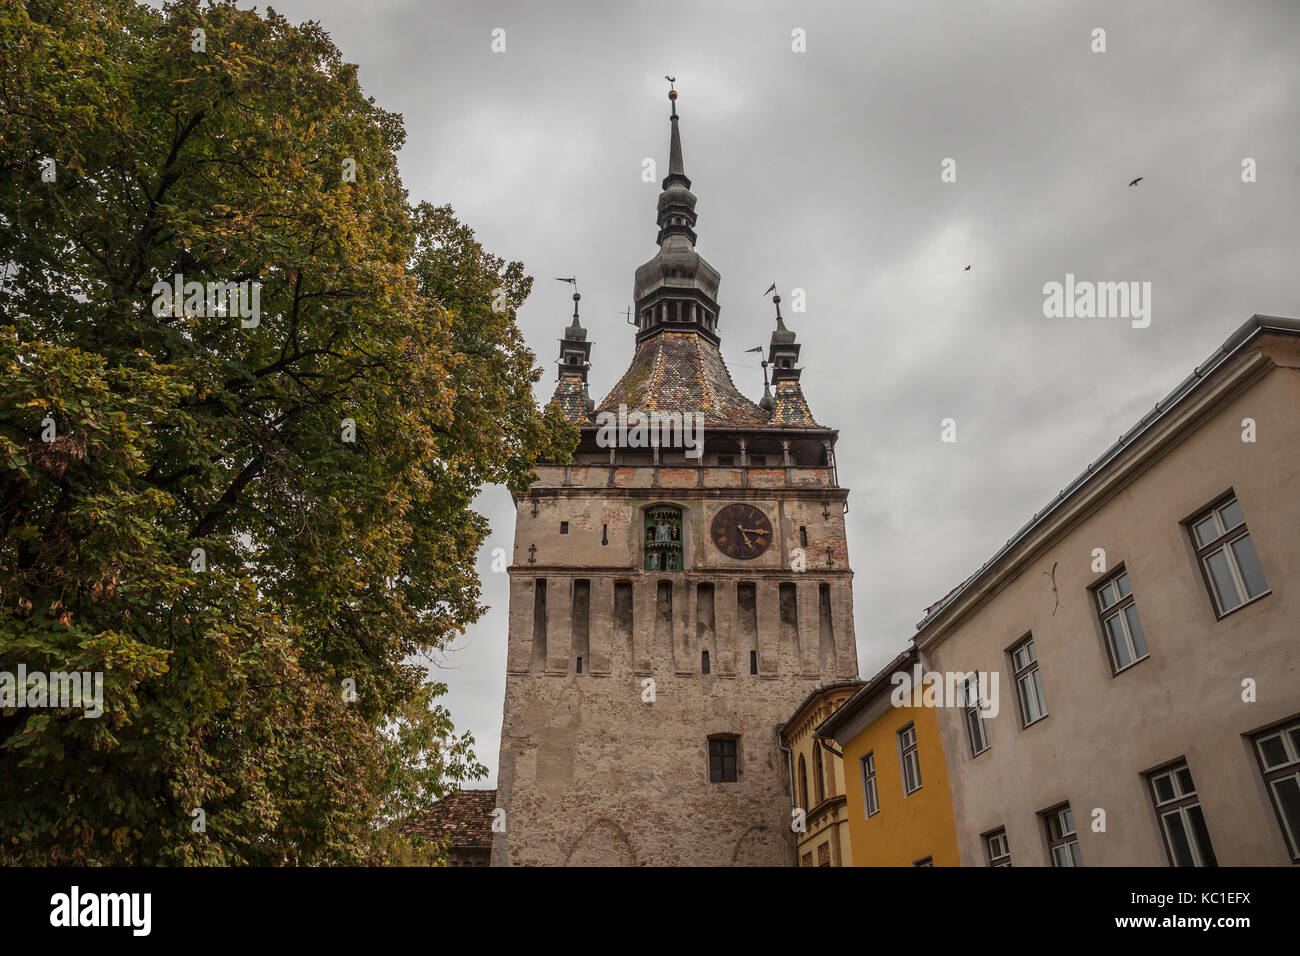 Sighisoara Clock Tower (Turnul cu Ceas) during a cloudy fall afternoon. It is the main entrance of Sighisoara castle, - Stock Image